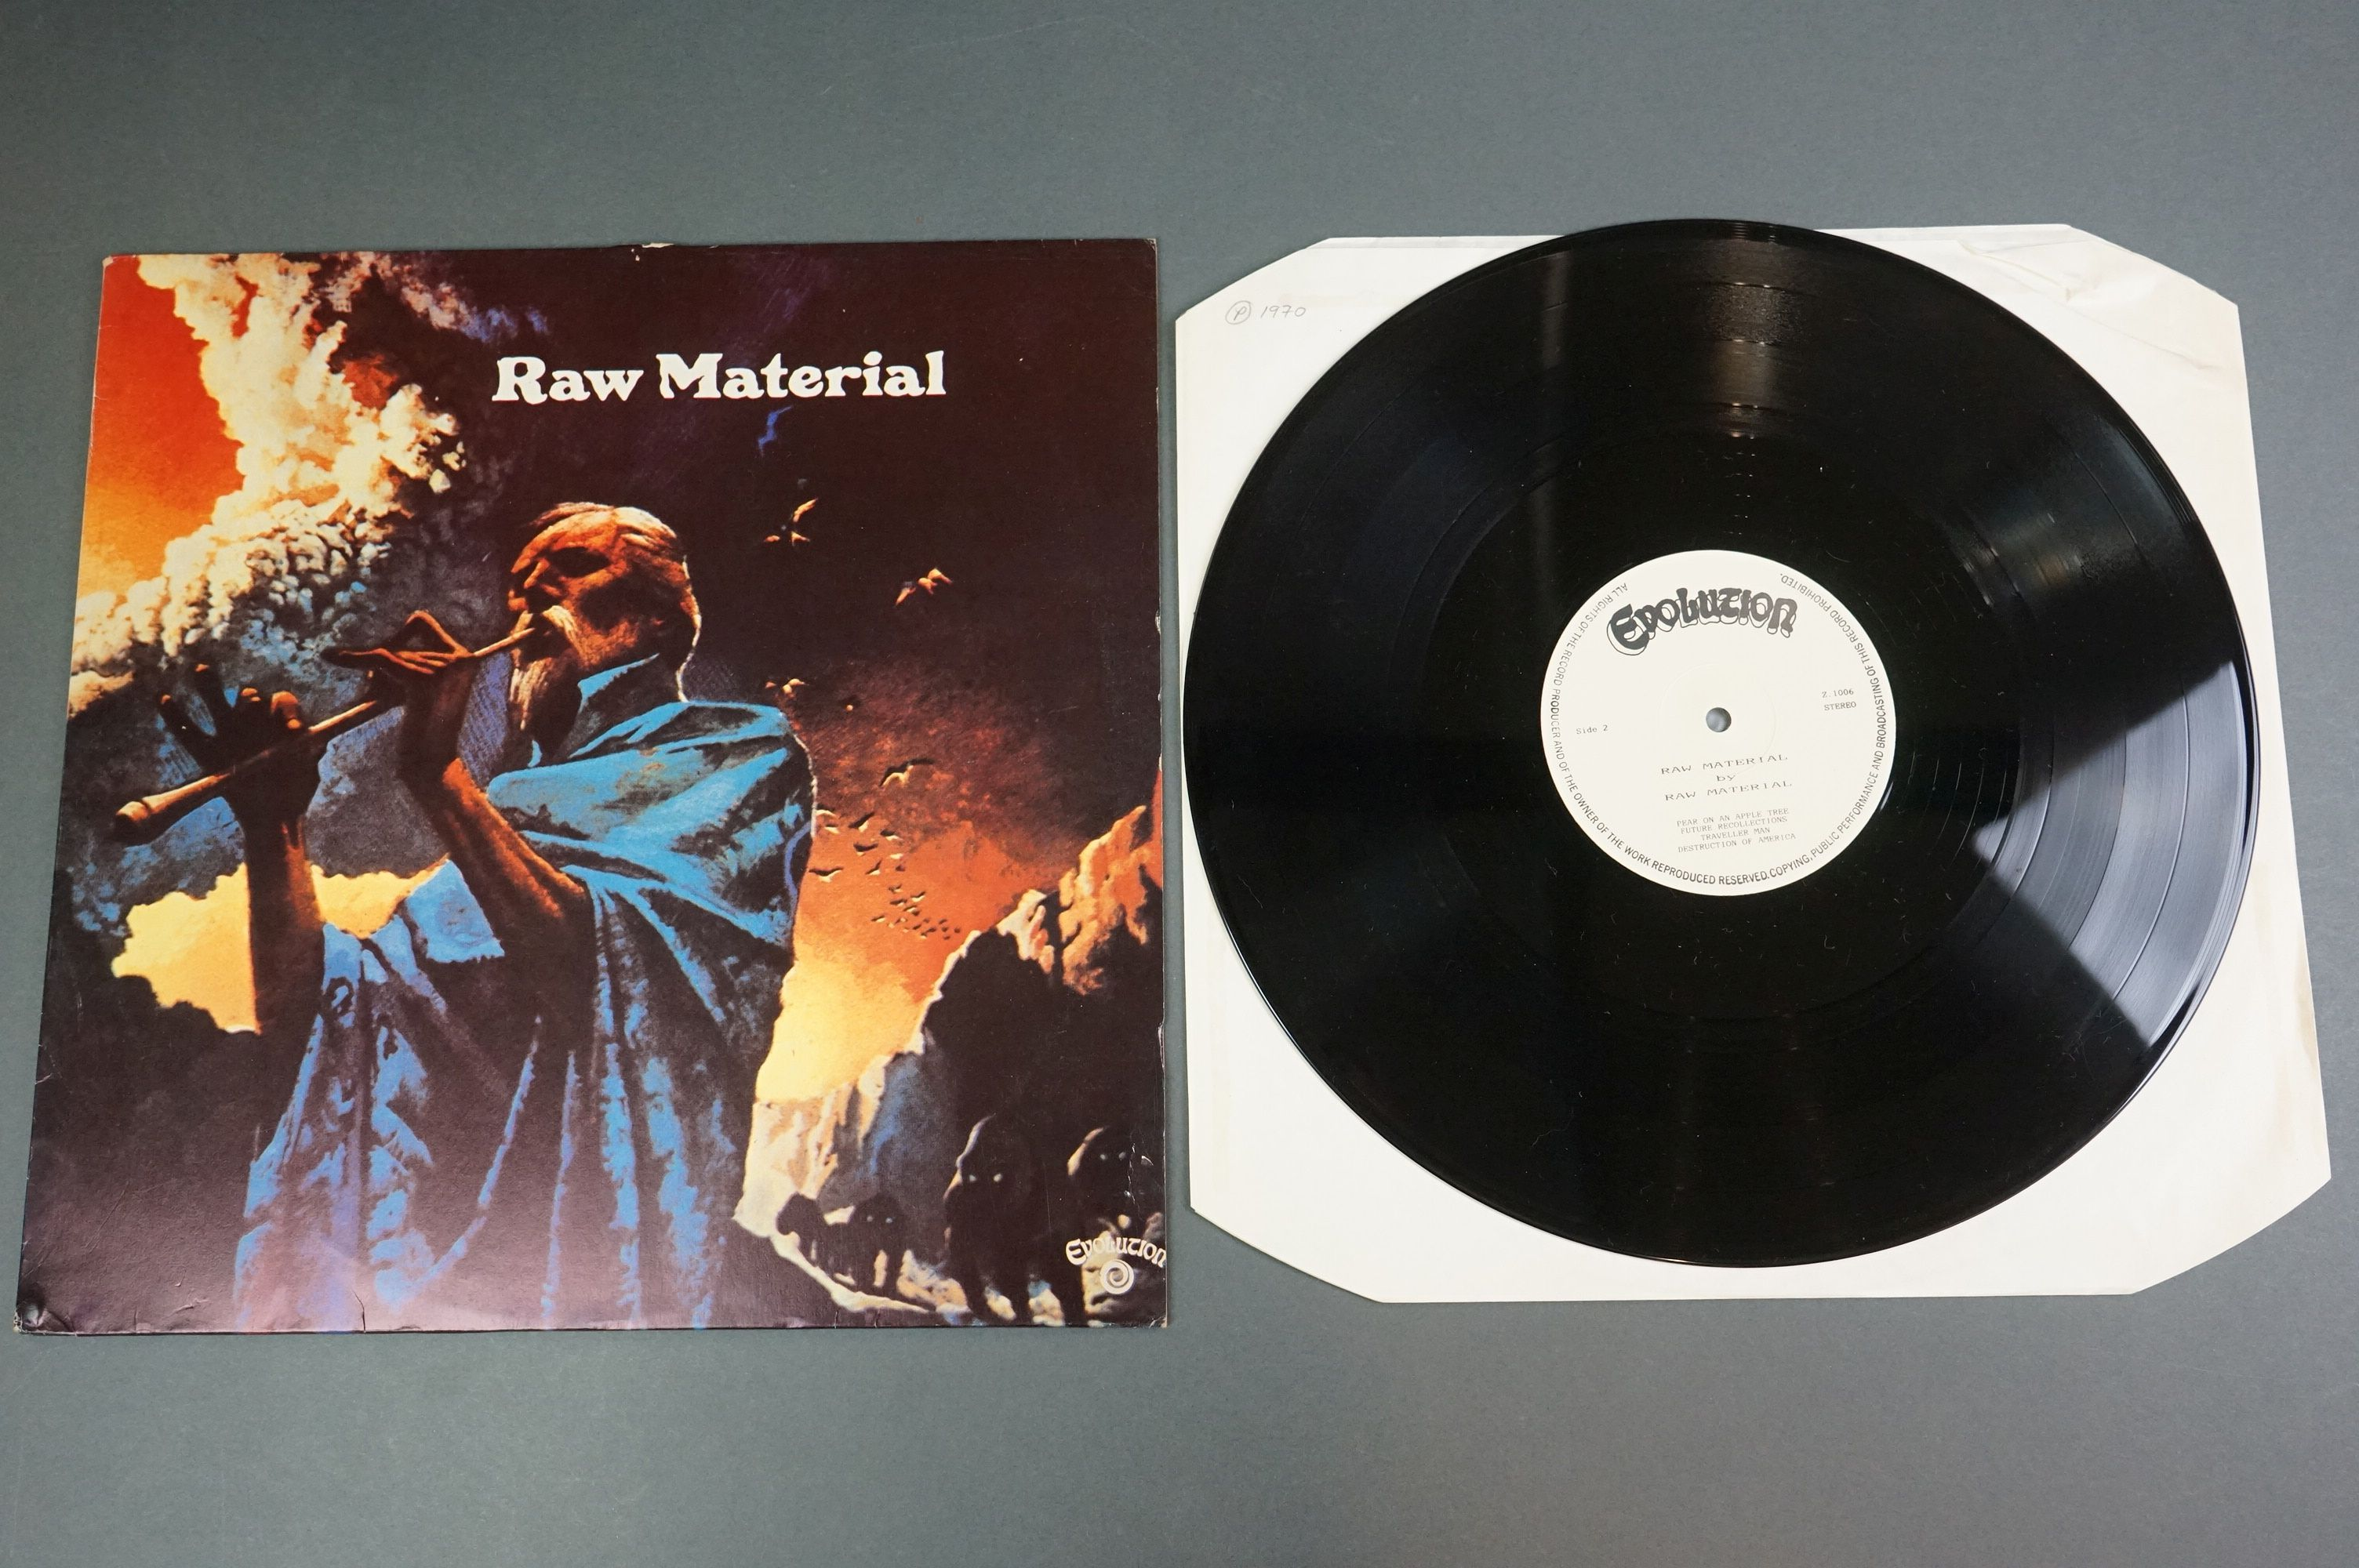 Vinyl - Two unofficial Raw Materials release LPs to include Time Is (NE8) and self titled (Z1006), - Image 5 of 6